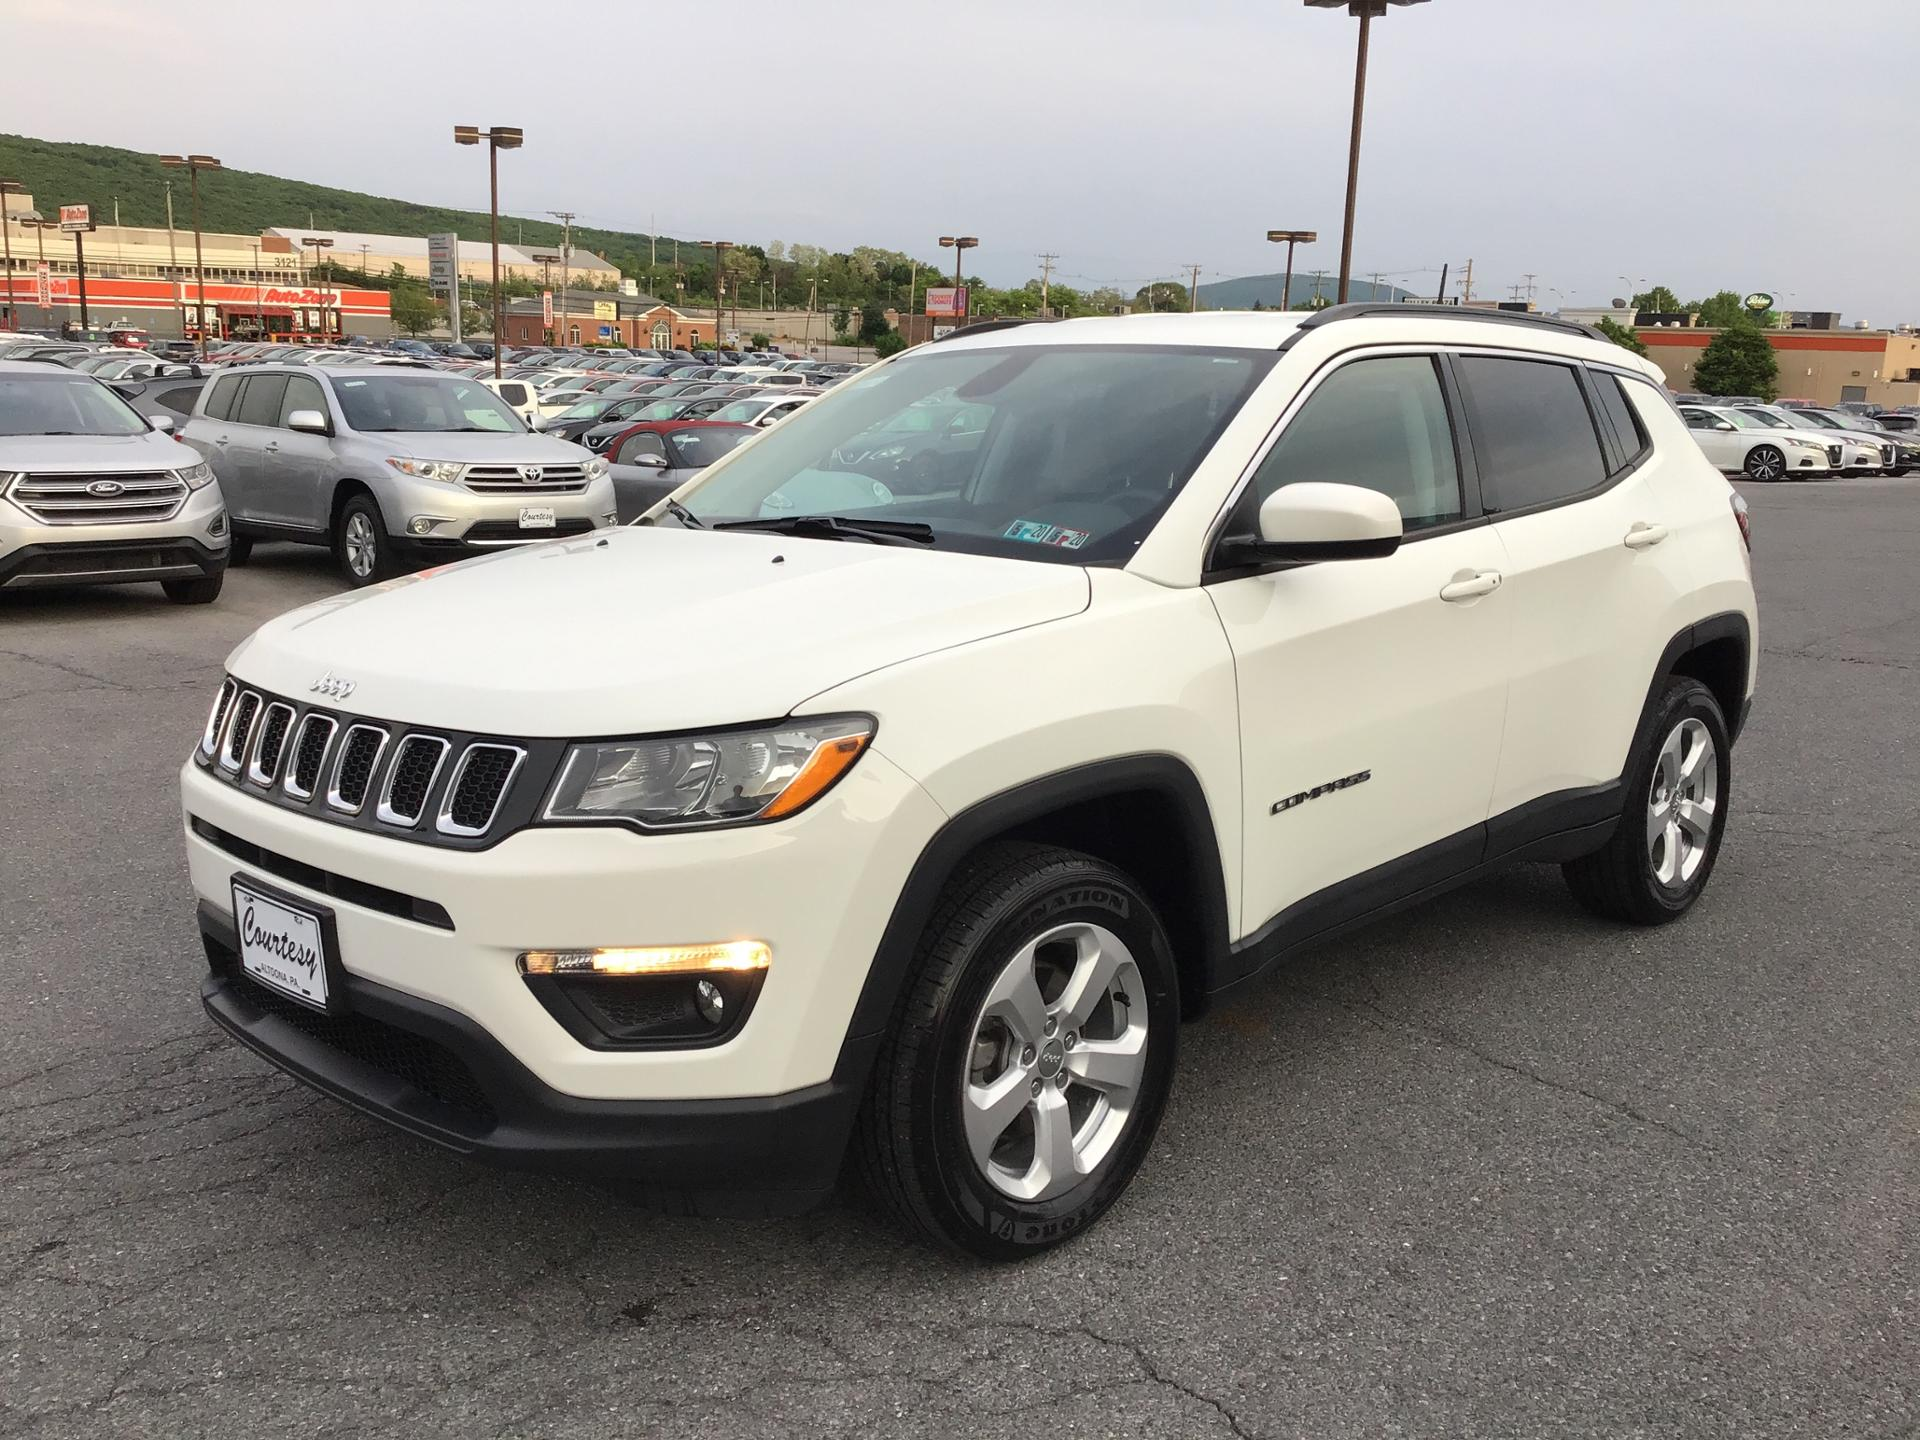 Used 2018 Jeep Compass For Sale at Courtesy Kia | VIN: 3C4NJDBB0JT282167